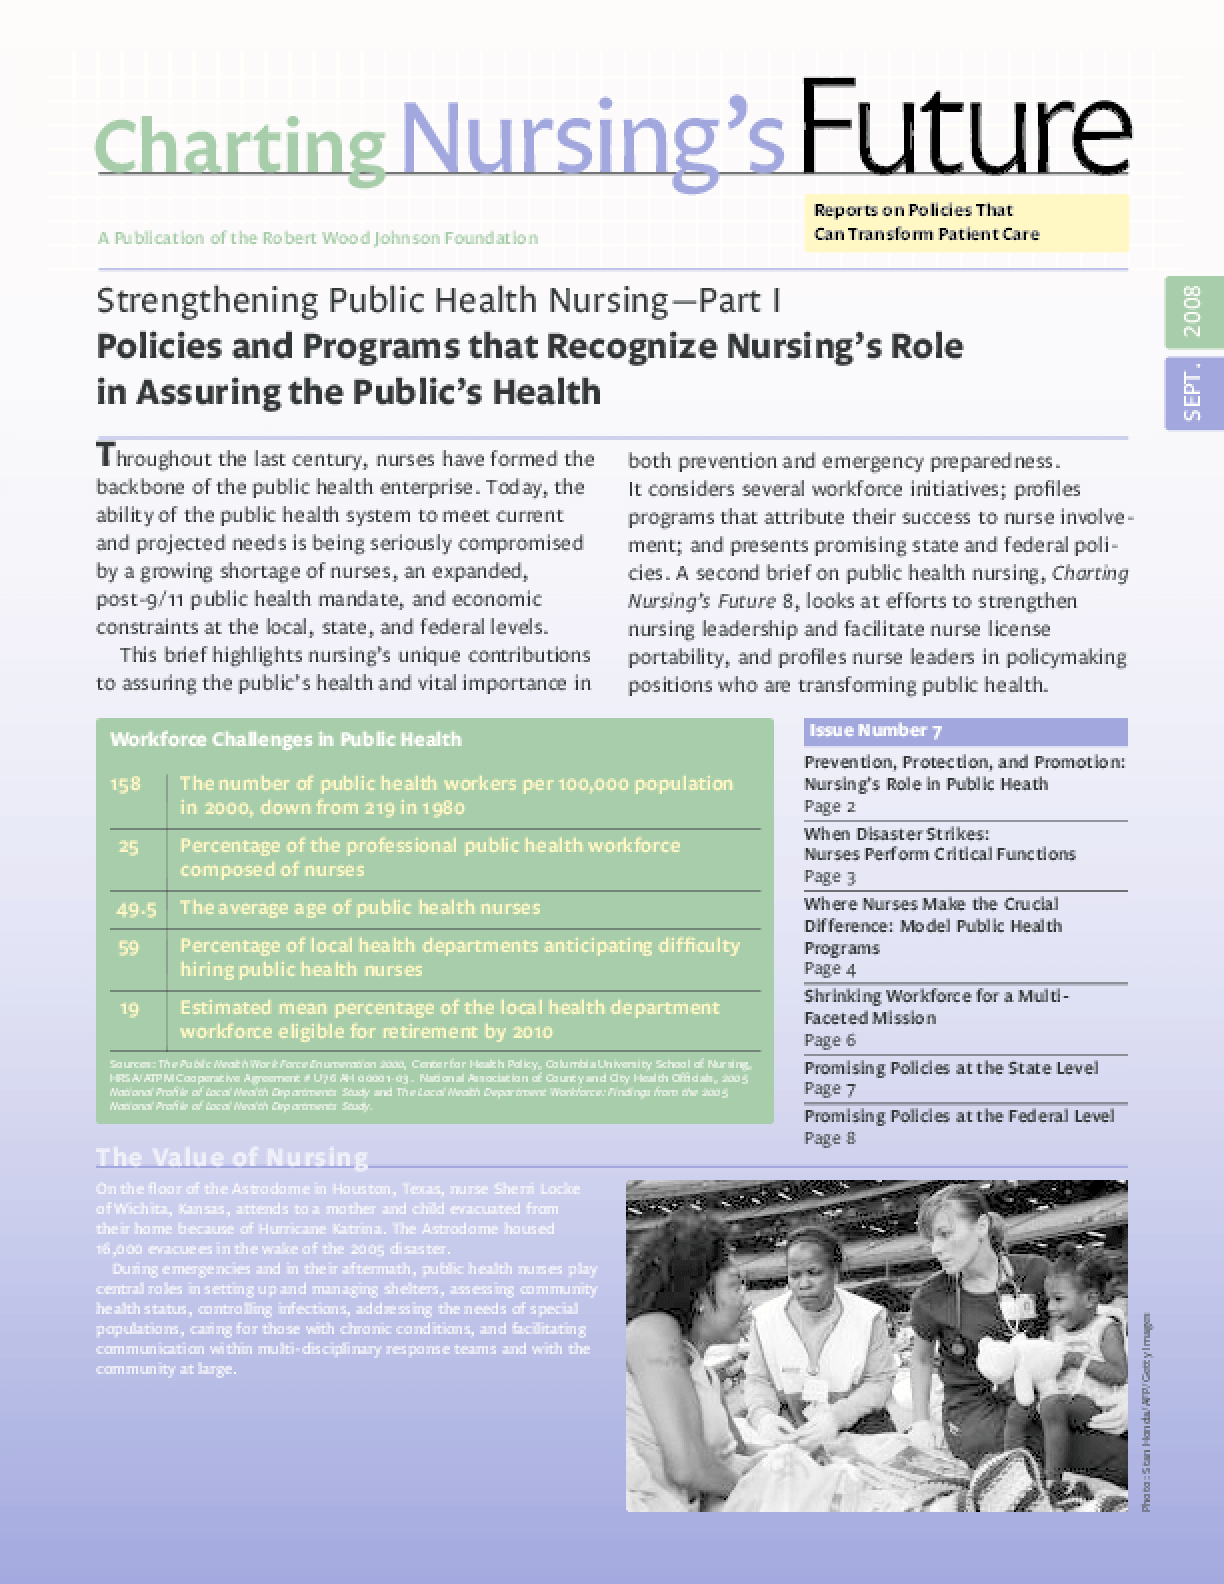 Strengthening Public Health Nursing Part I: Policies and Programs that Recognize Nursing's Role in Assuring the Public's Health